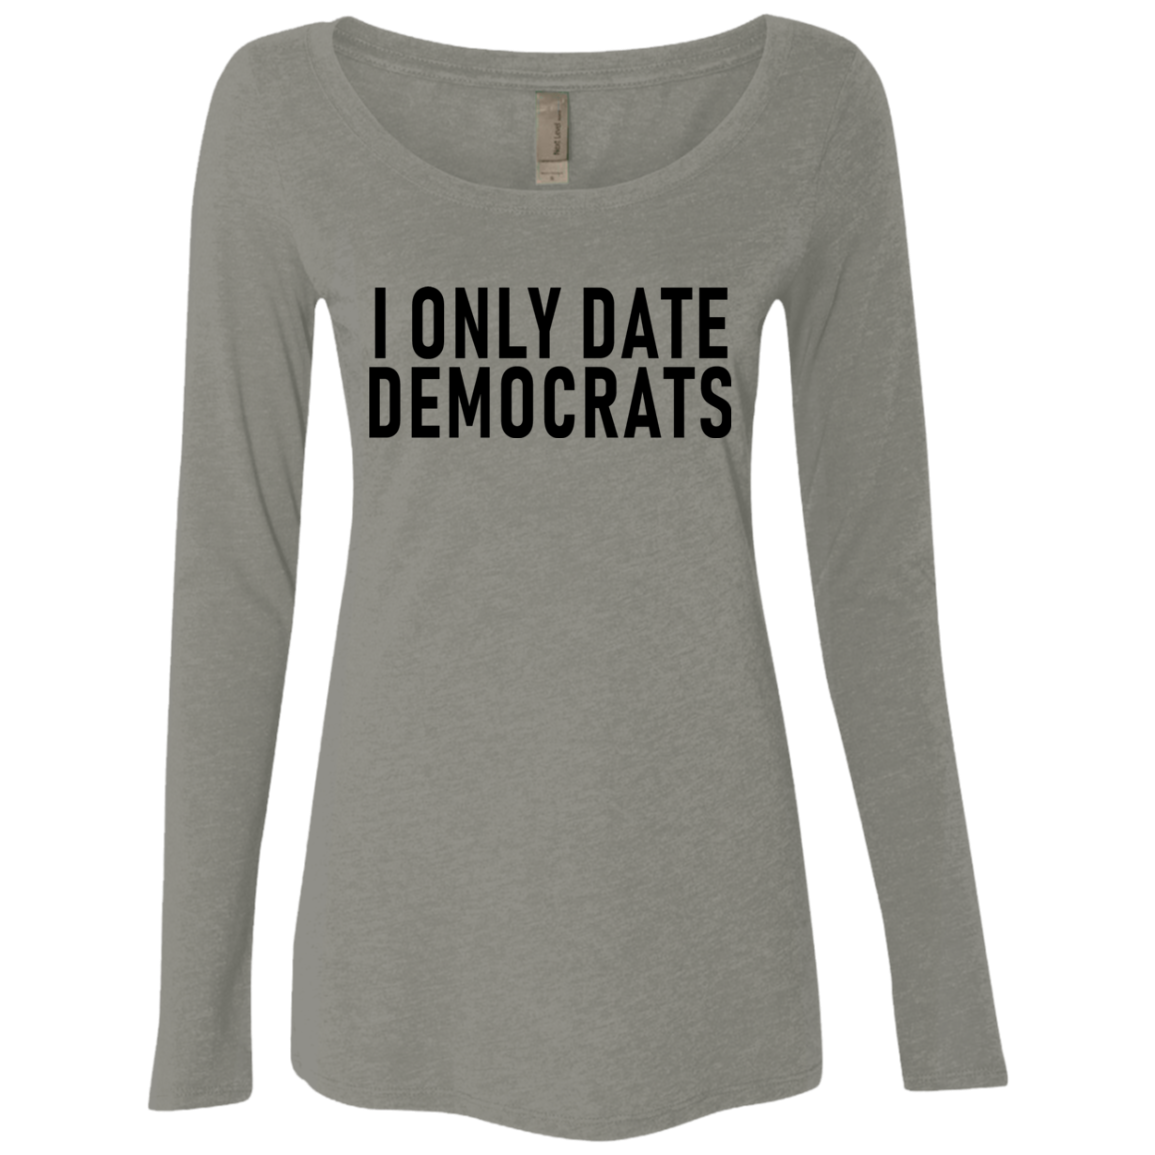 I Only Date Democrats Women's Long Sleeve Tee